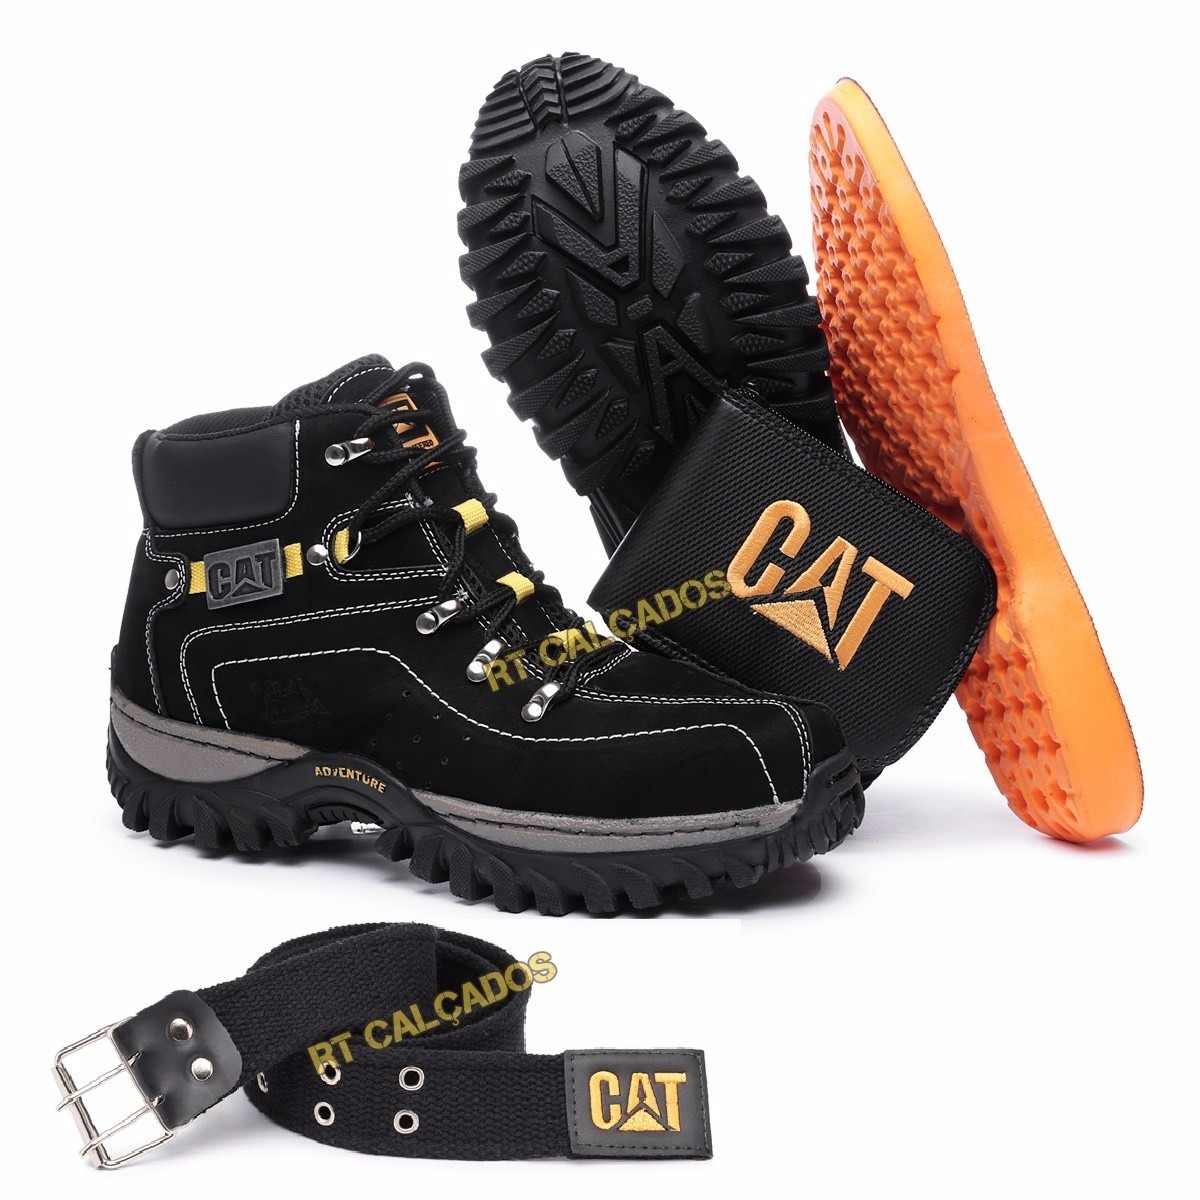 2a7072b5dd Kit Bota Adventure Caterpillar Palmilh Gel Promoção Limitada - R  99 ...